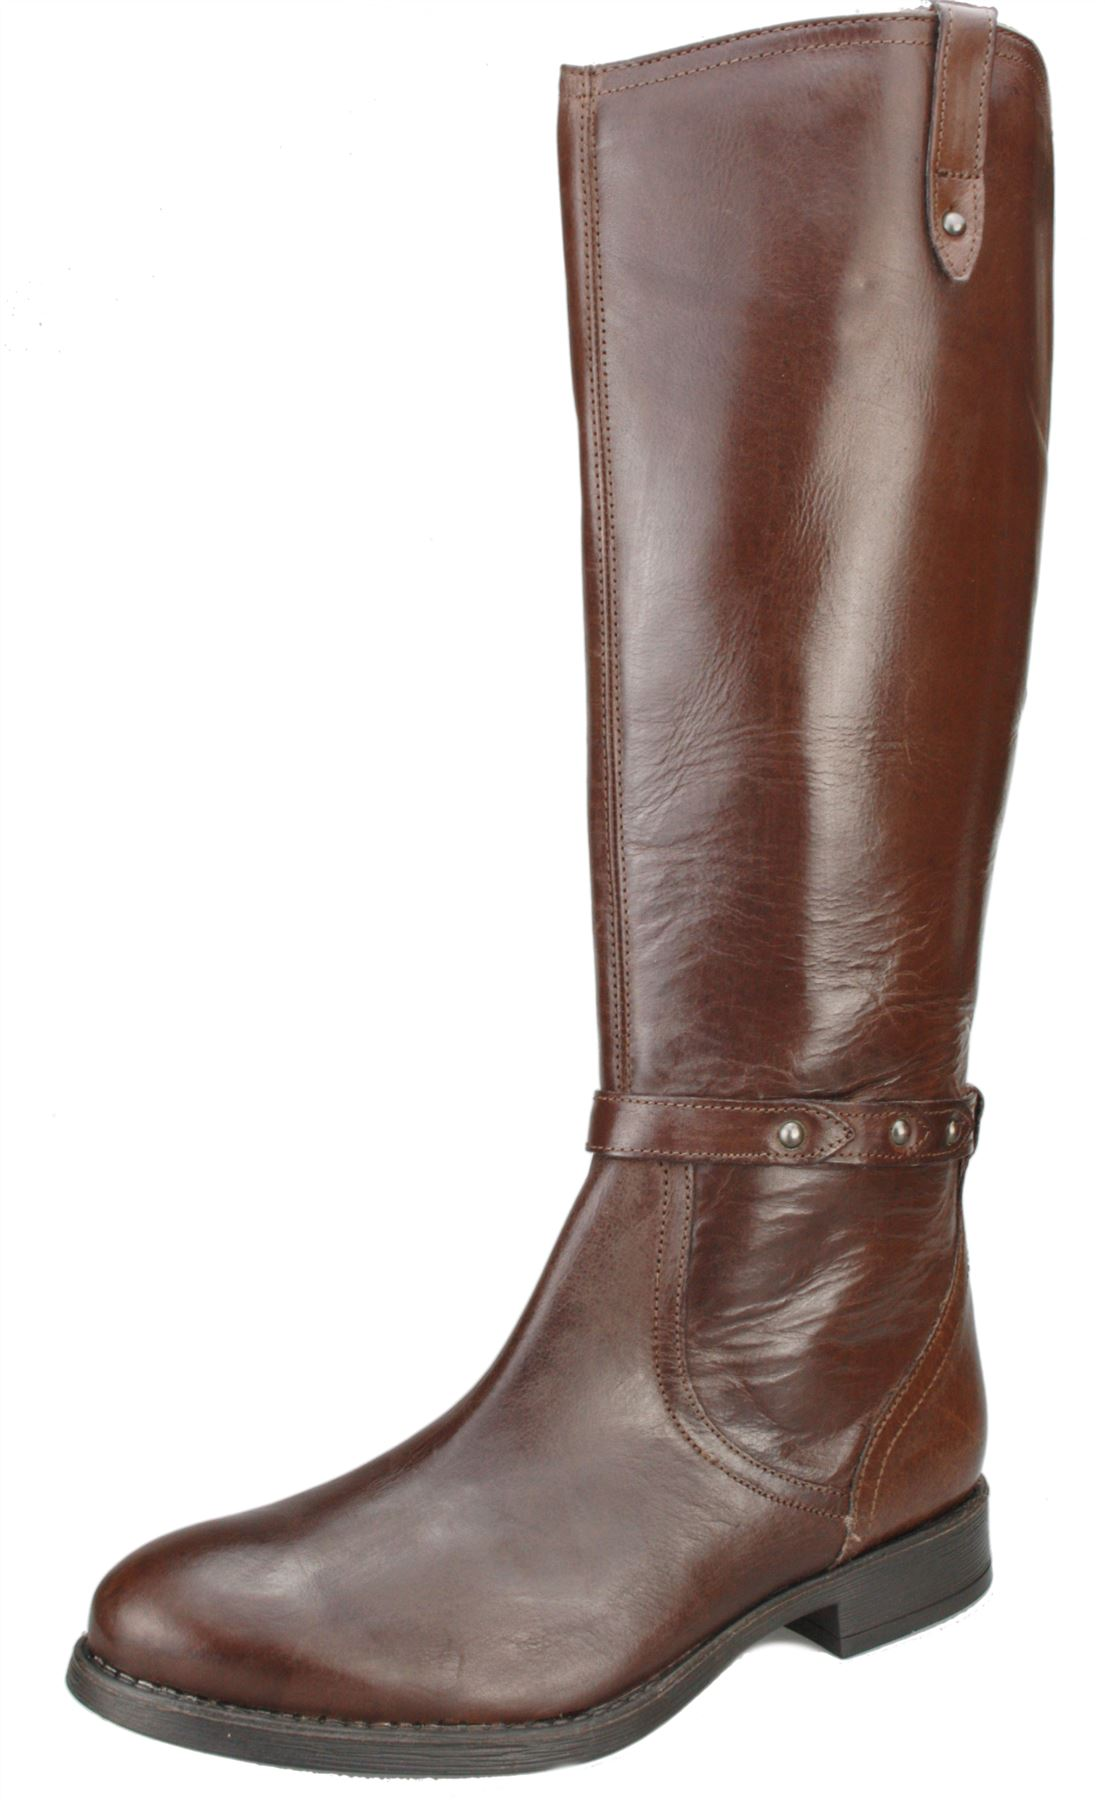 Free shipping BOTH ways on genuine leather boots womens, from our vast selection of styles. Fast delivery, and 24/7/ real-person service with a smile. Click or call